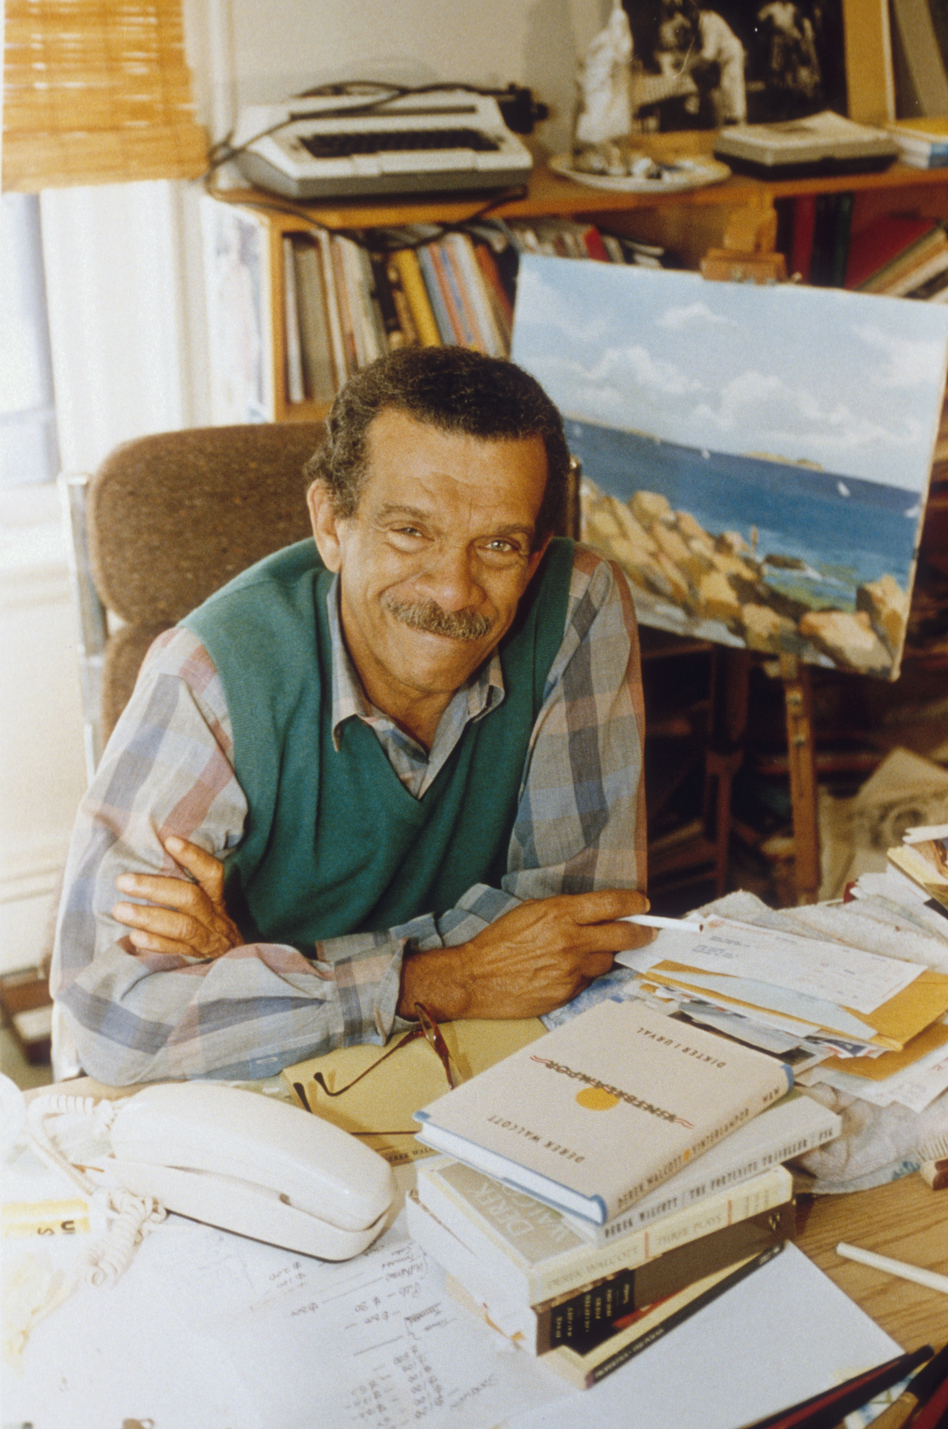 Poet and playwright Derek Walcott published his first poem at the age of 14. He won the Nobel Prize in Literature in 1992. (Brooks Kraft/Sygma via Getty Images)